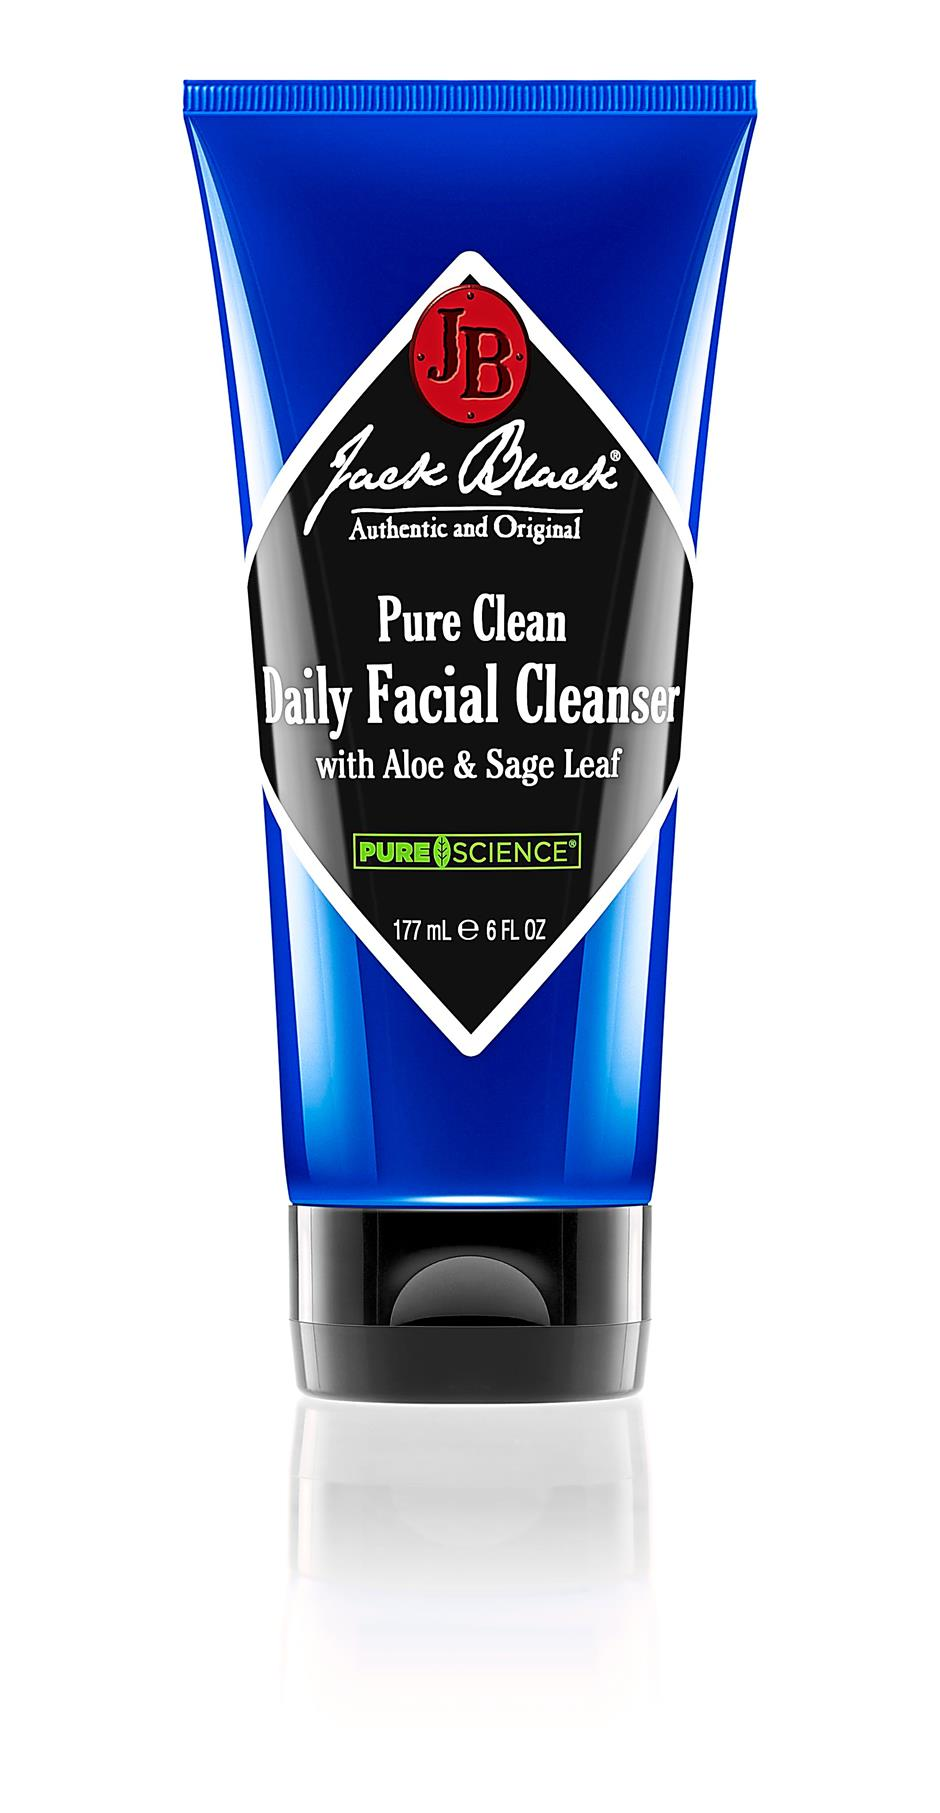 Jack Black Pure Clean Daily Facial Cleanser.